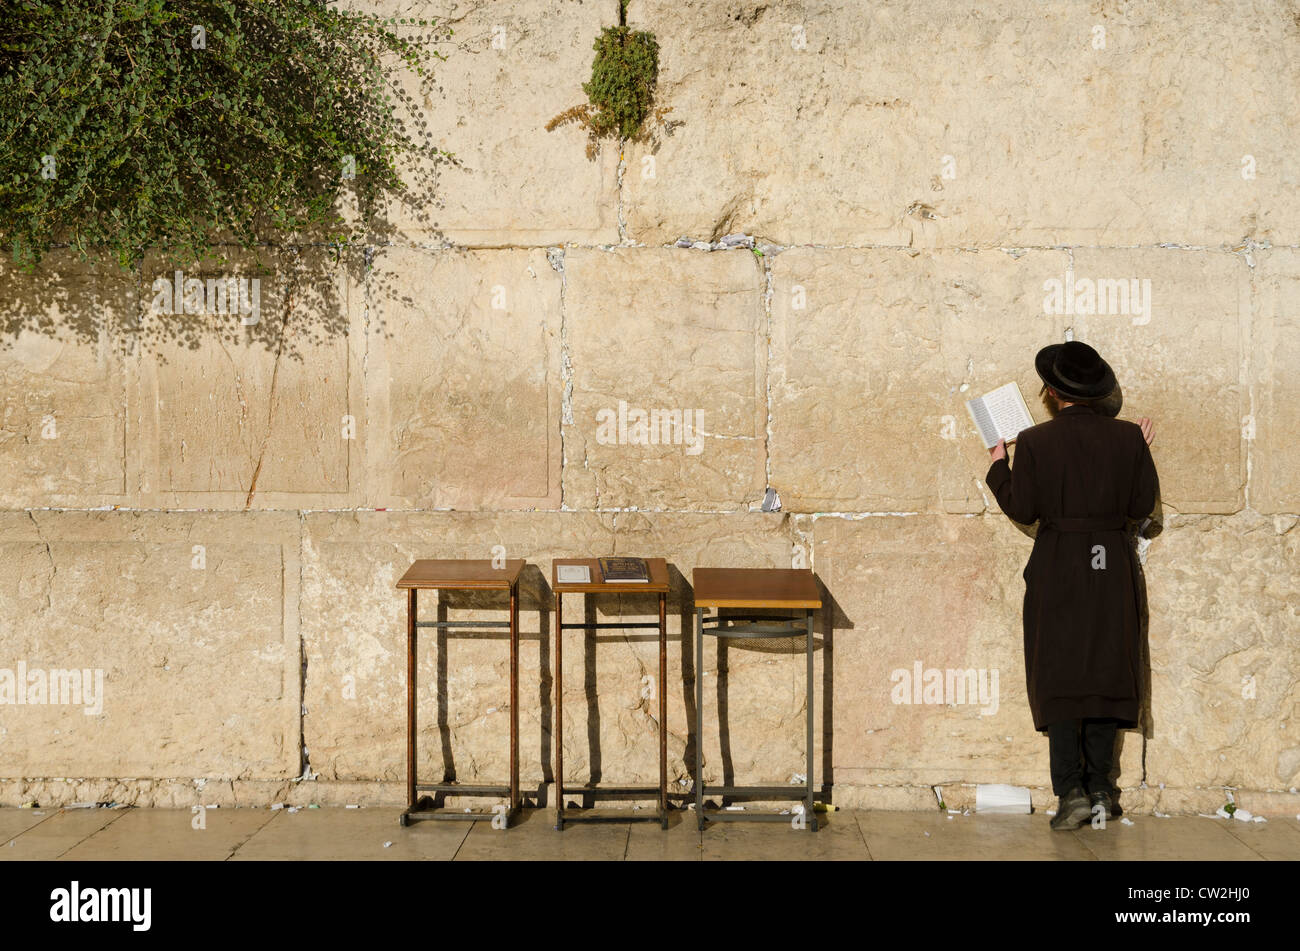 Orthodox Jew praying at the Western Wall. Jerusalem Old City. Israel. - Stock Image